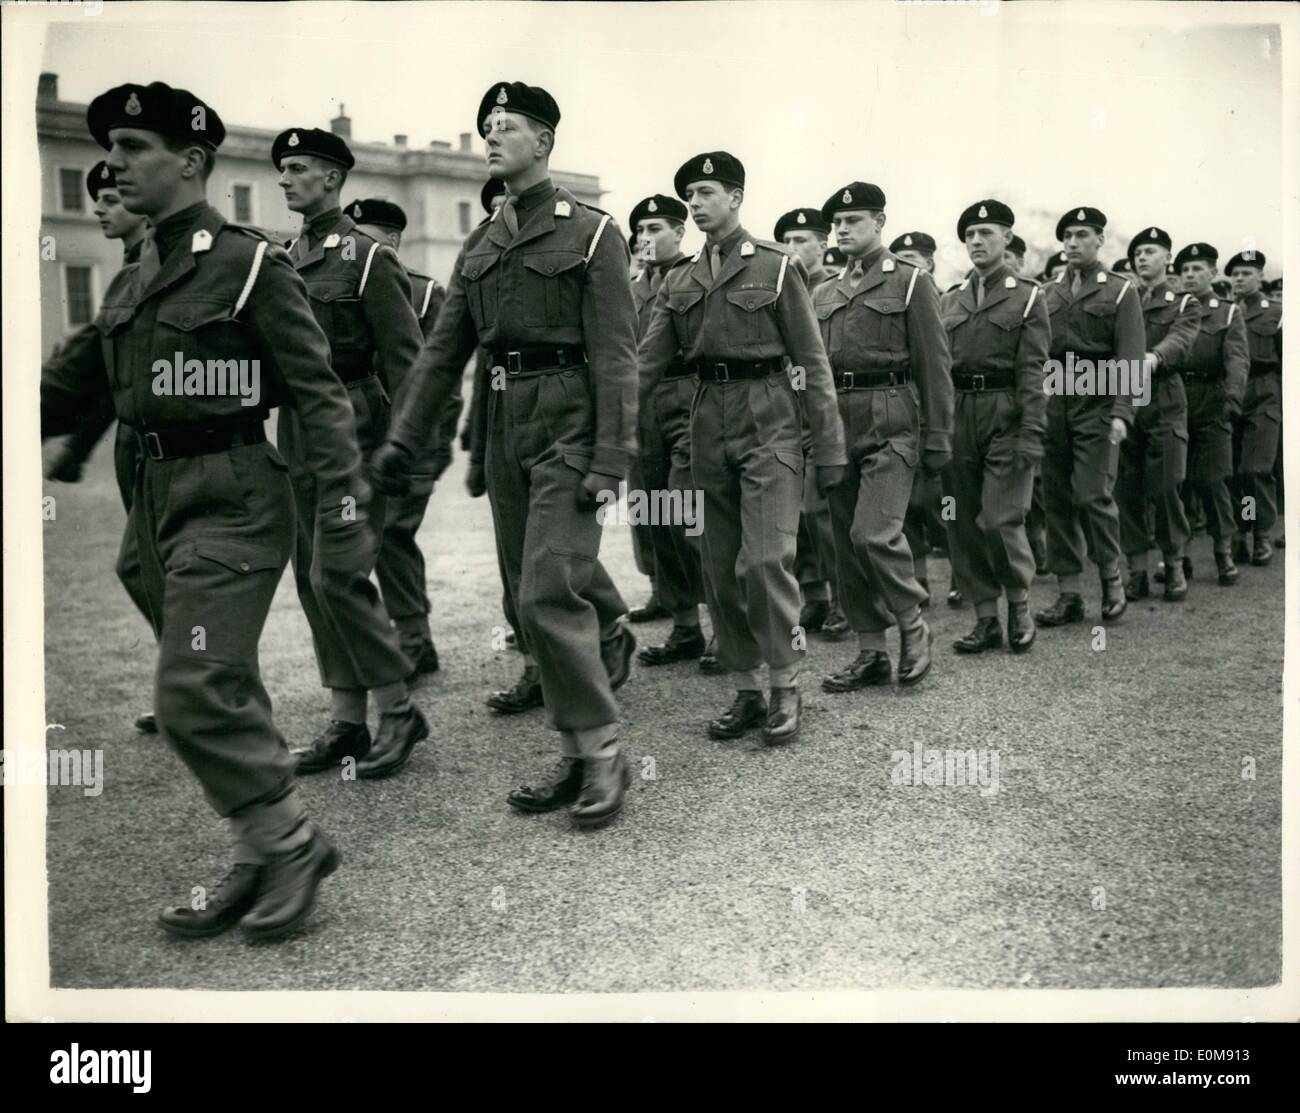 Feb. 02, 1954 - Sovereign's parade at RMA Sandhurst. the sovereign's parade at the royal military academy Sandhurst, was taken by Field Marshall the Earl Alexander of Tunis, Minister of defence, today. photo shows The Duke of Kent, who is in the Anzio company at Sandhurst, seen marching with the company at Sandhurst today. He can be seen in centre. - Stock Image